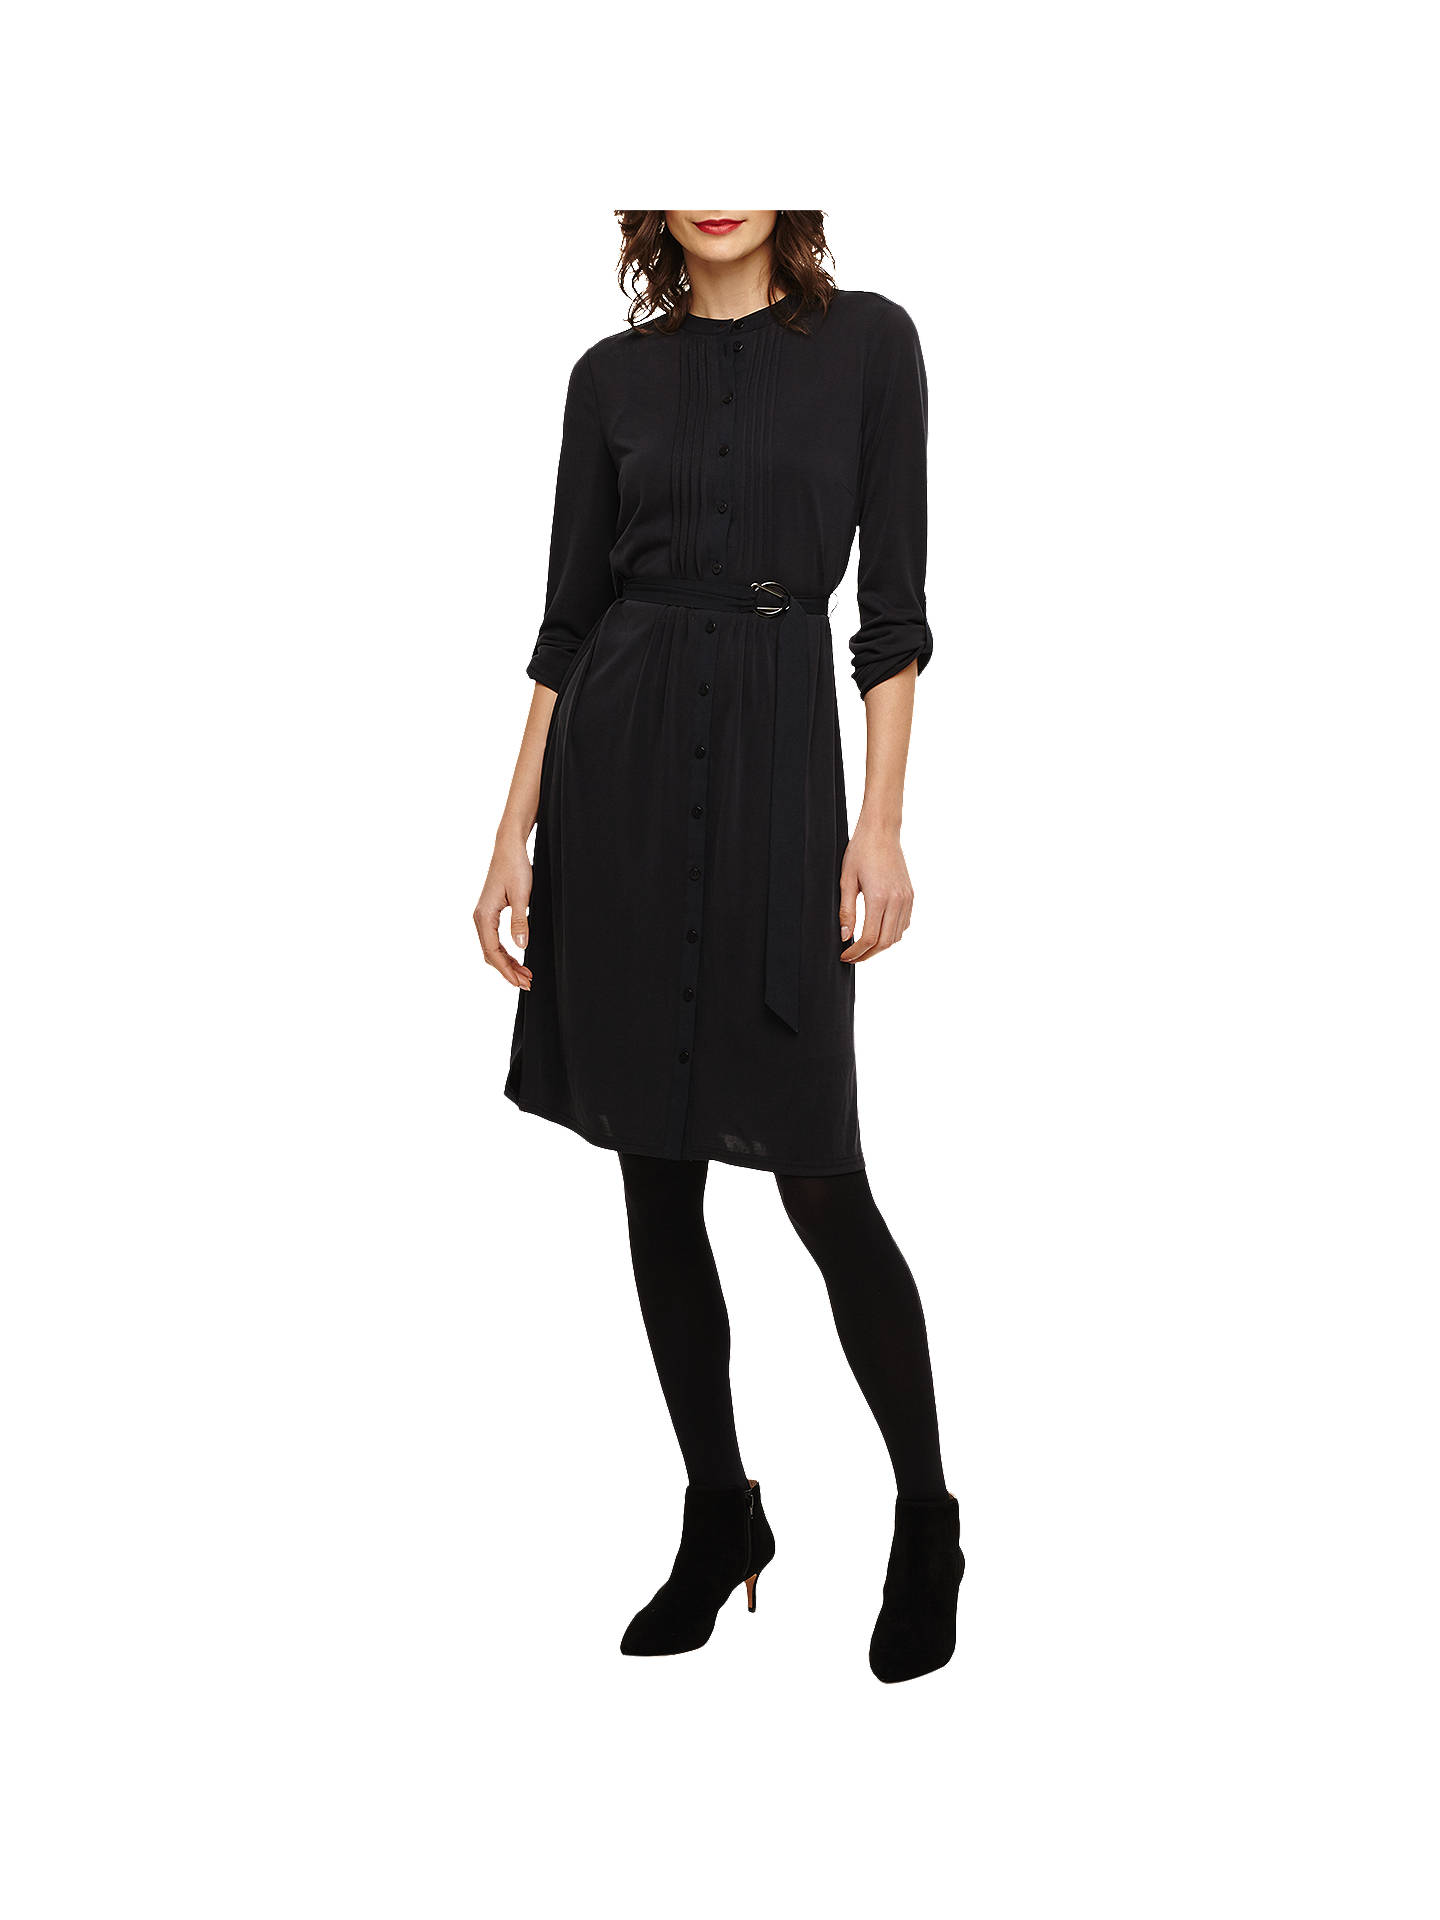 c976f9907471 Buy Phase Eight Cadee Cupro Shirt Dress, Charcoal, 10 Online at  johnlewis.com ...